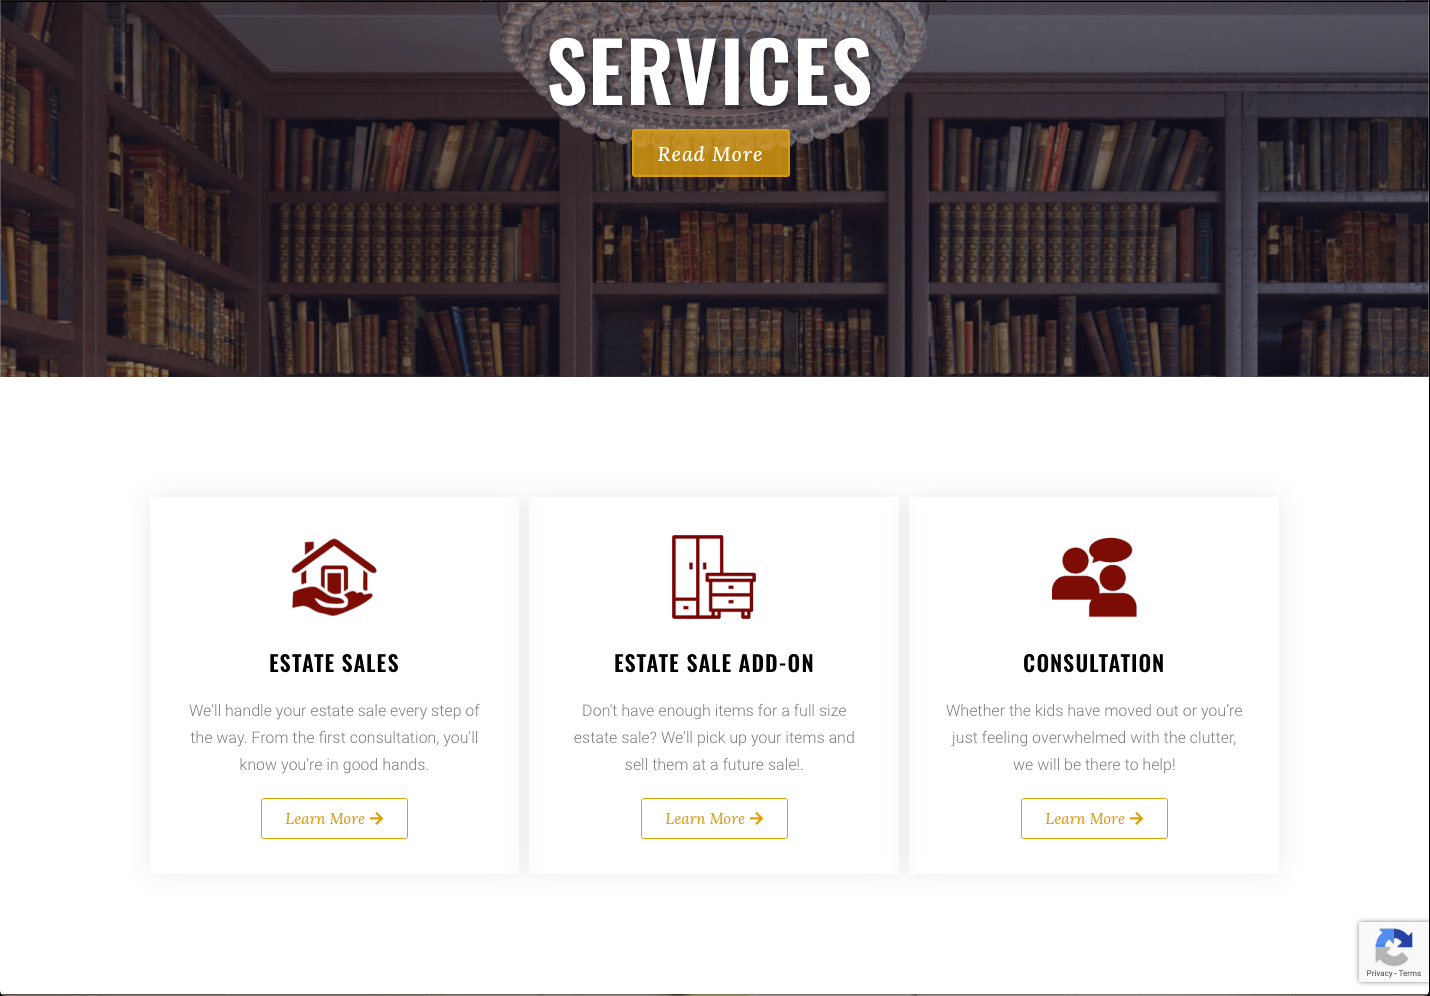 Services page on an e-commerce website designed by 2oddballs Creative